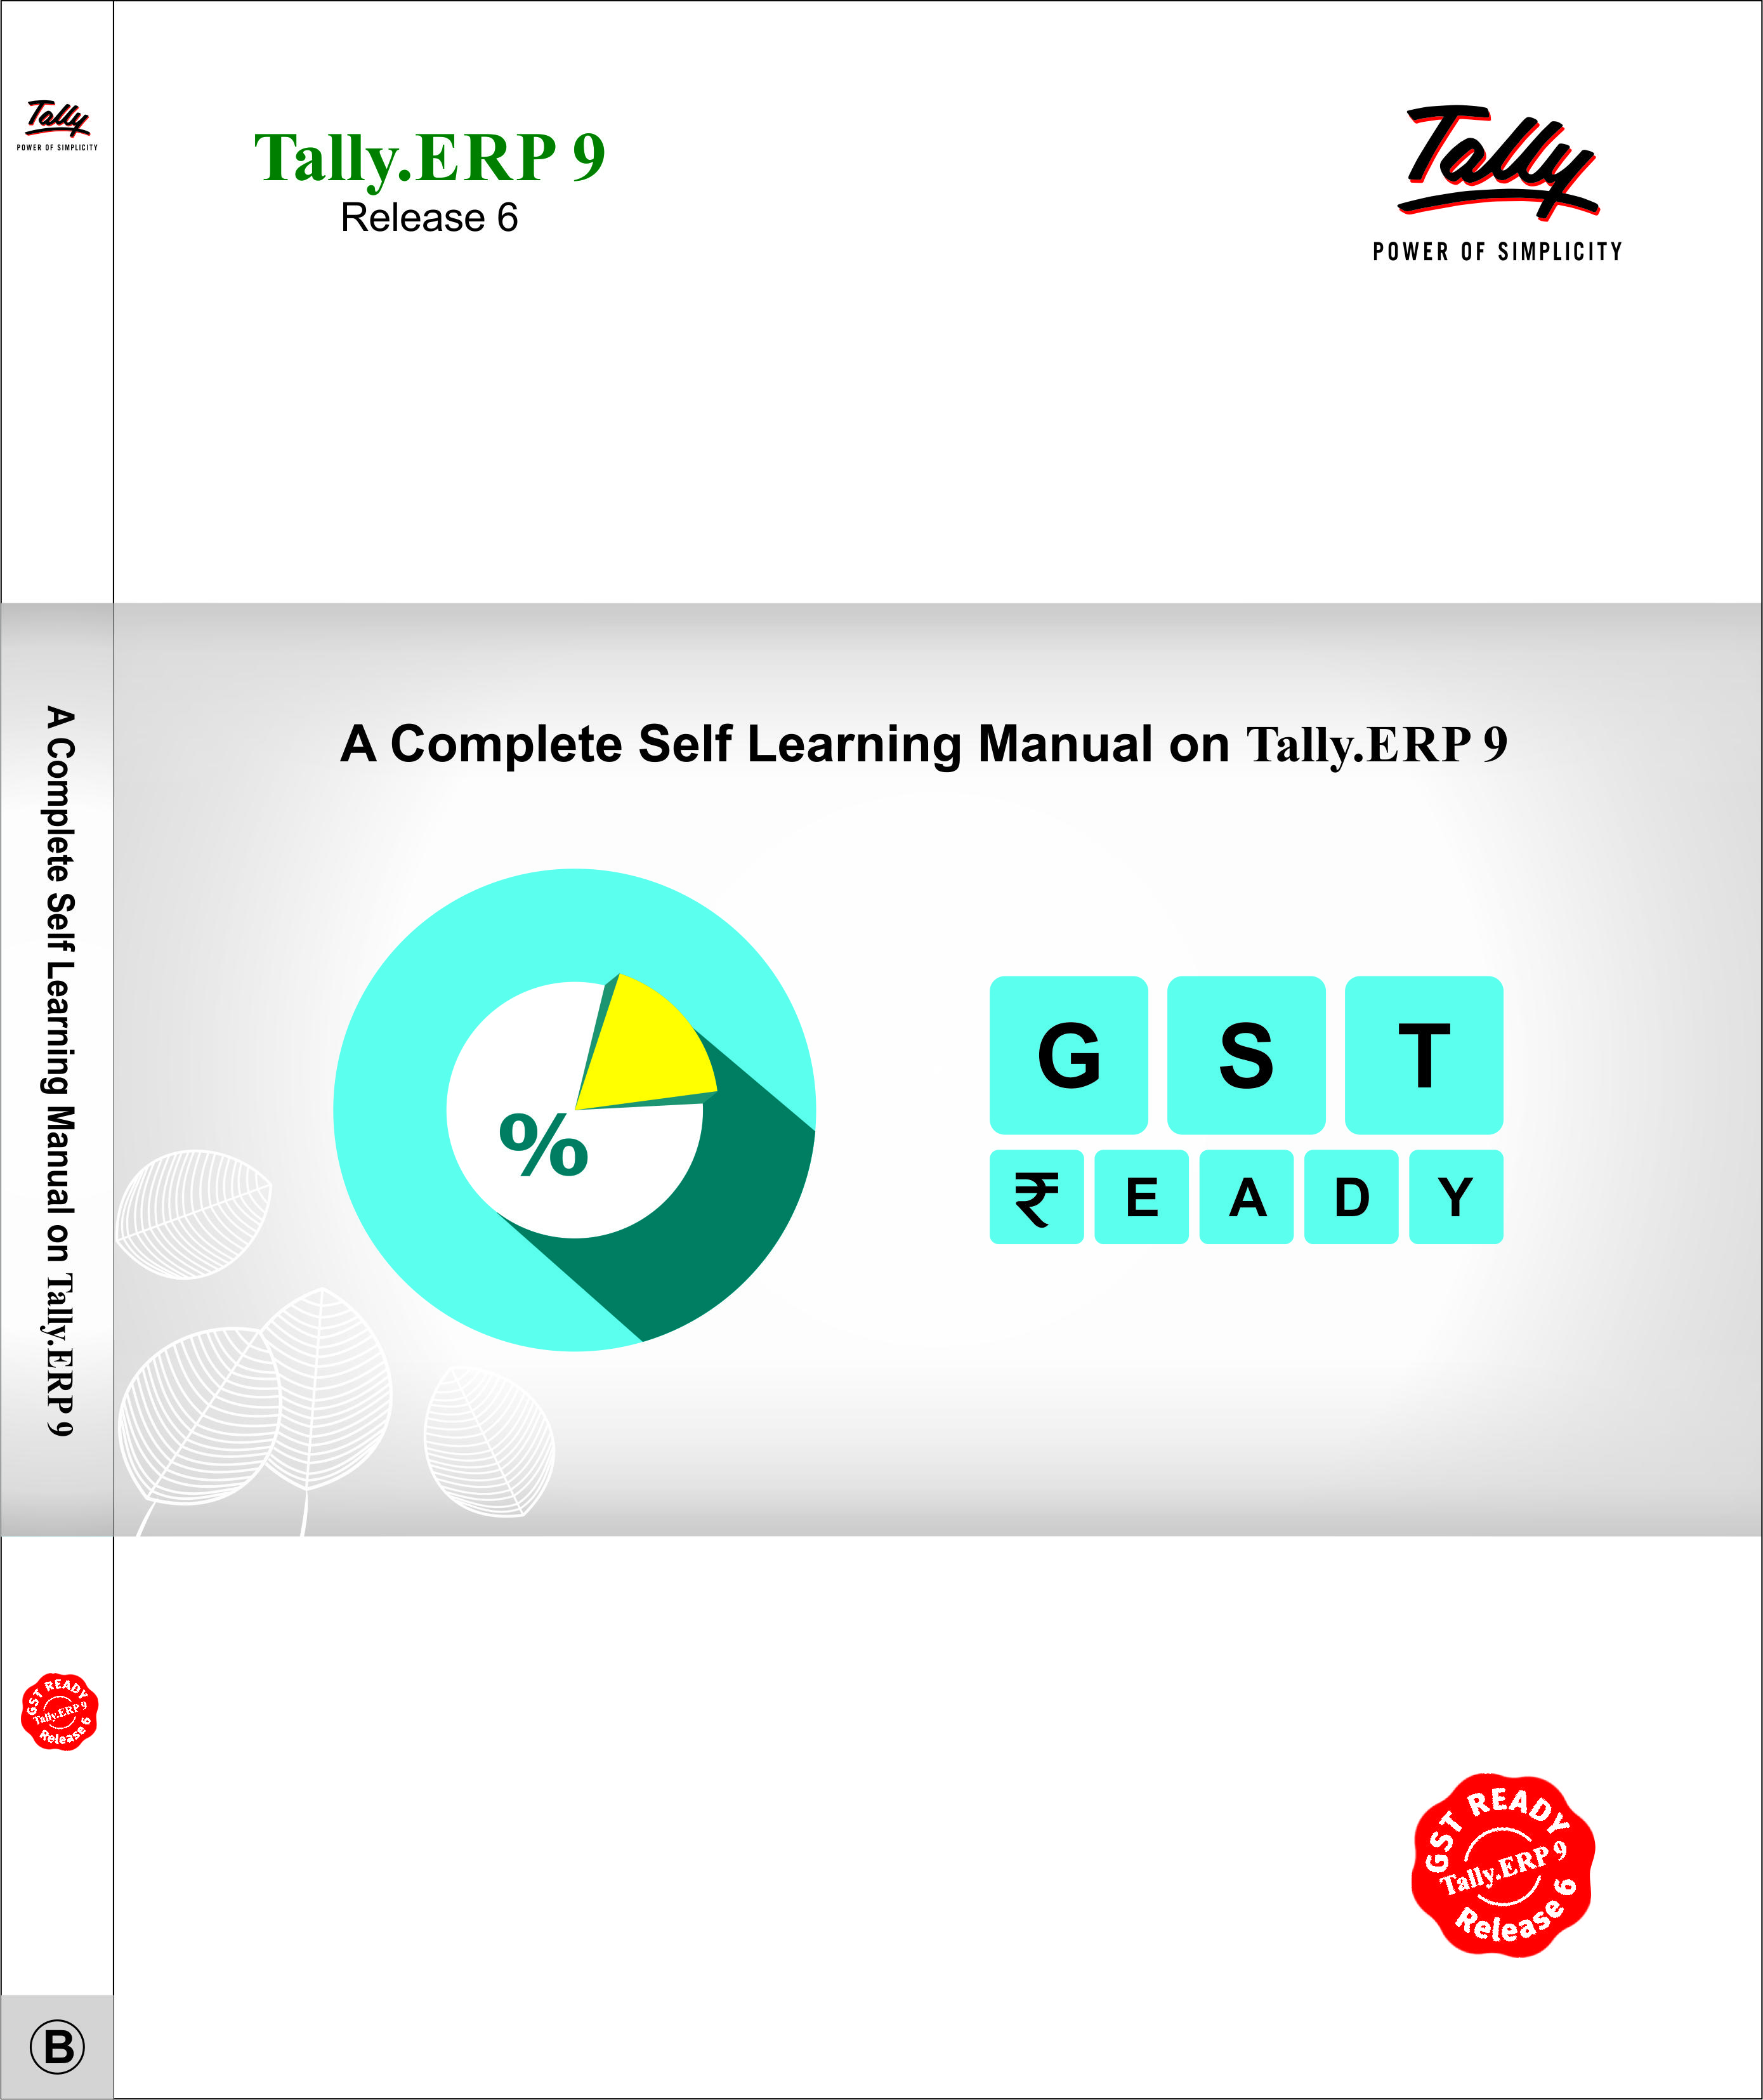 A Complete Self Learning Manual on Tally.ERP 9 (Basic) Book